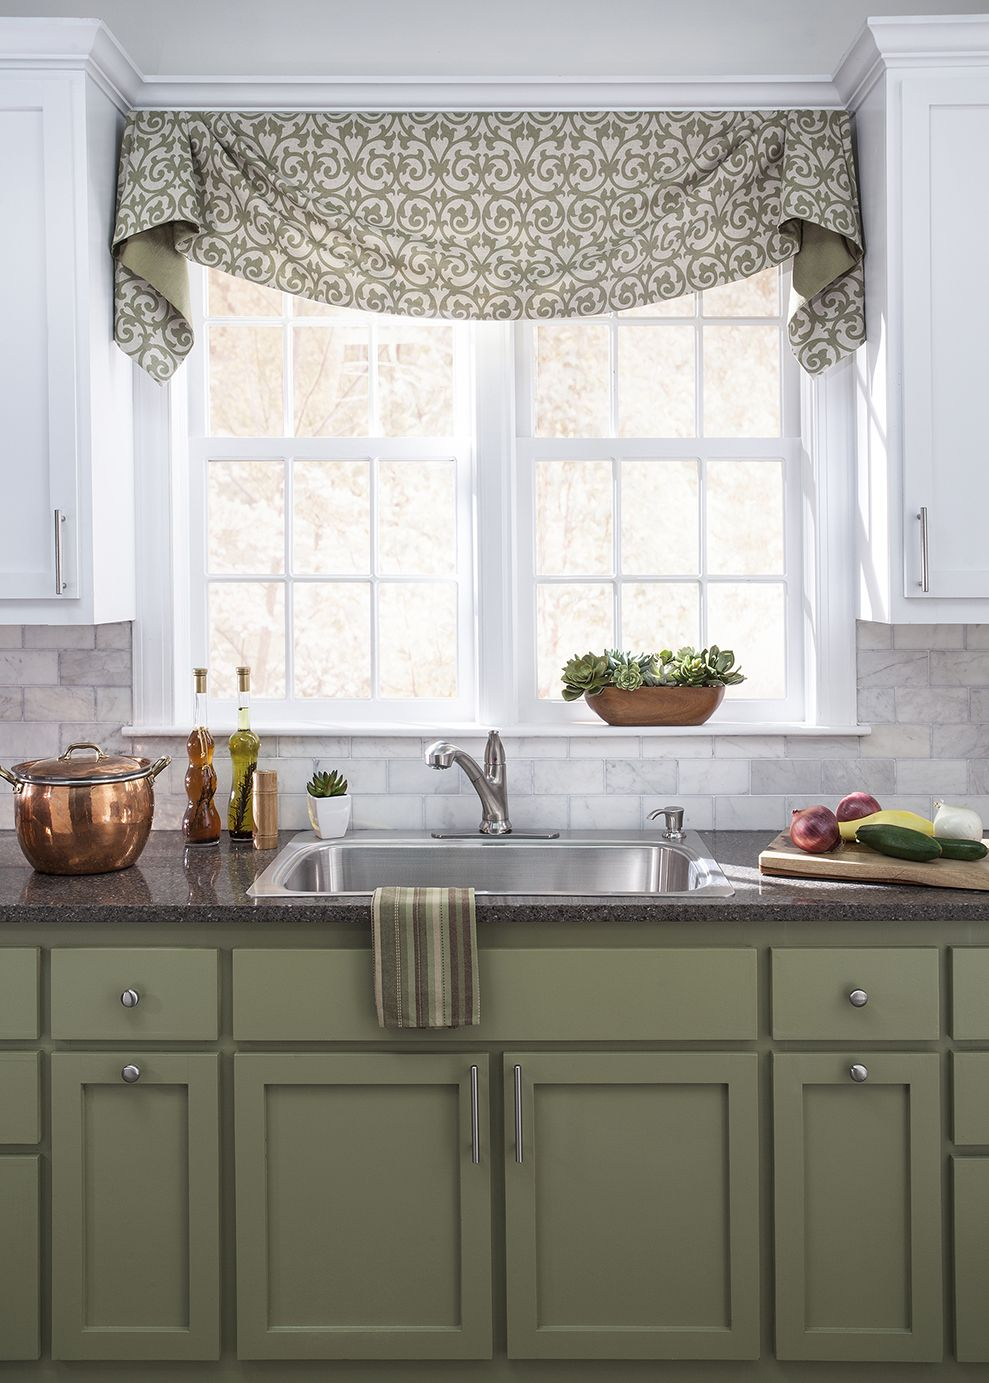 Kitchen Valance Delta Pull Down Faucet Flowing Fabrics And Coordinating Colors Are A Win In This Gorgeous Trendy